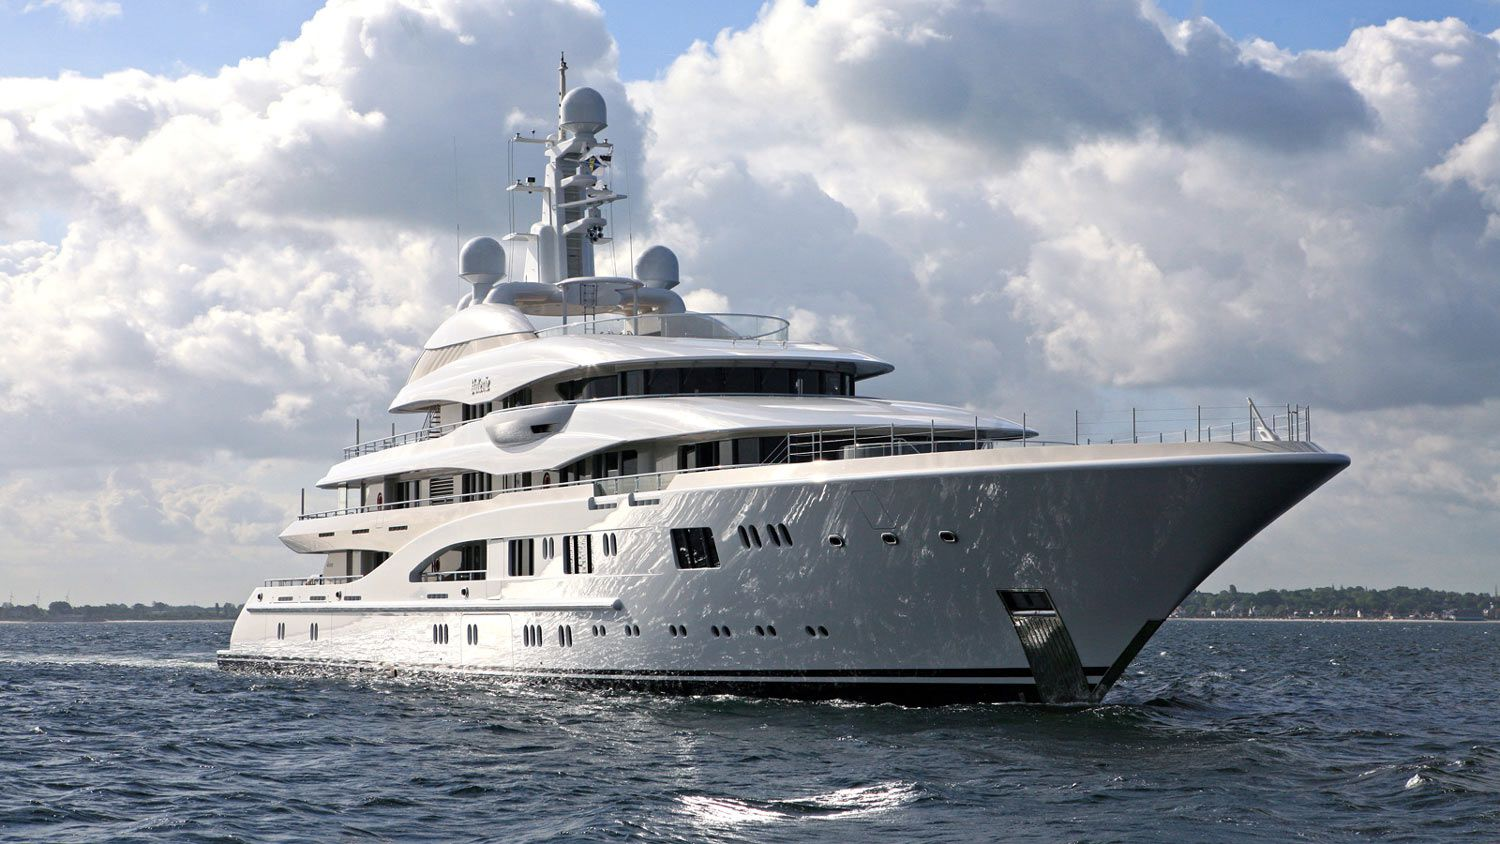 The 270-foot Lürssen <em>Valerie</em> has an asking price of about $189.9 million. She accommodates 12 guests in six staterooms, with an additional guest-quality staff cabin on the upper deck.